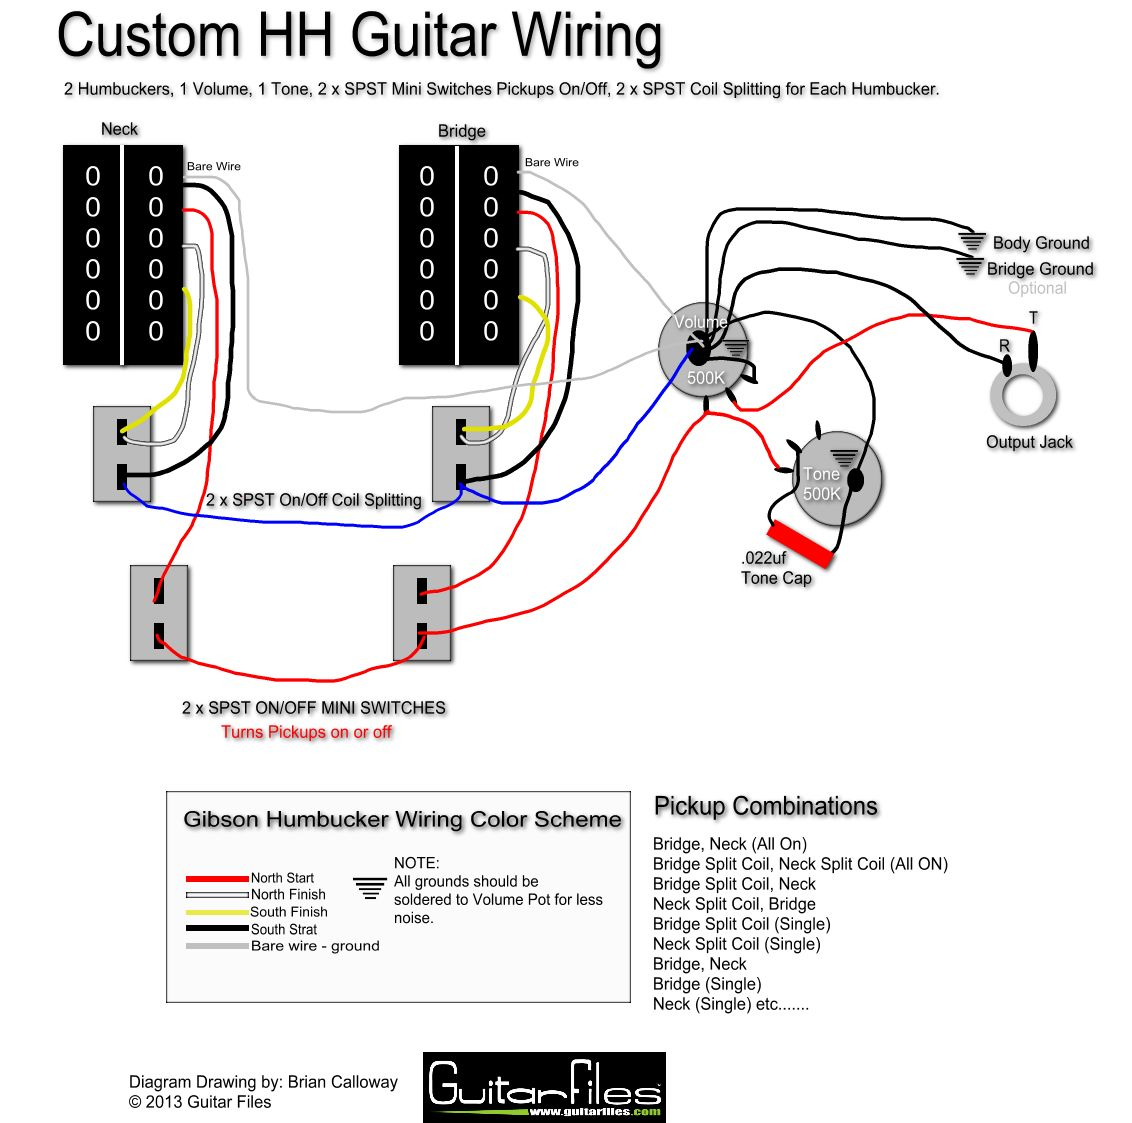 afe4f8370c0d308d426df63ec12f015c custom hh wiring diagram with spst coil splitting and spst ho wiring diagram at soozxer.org